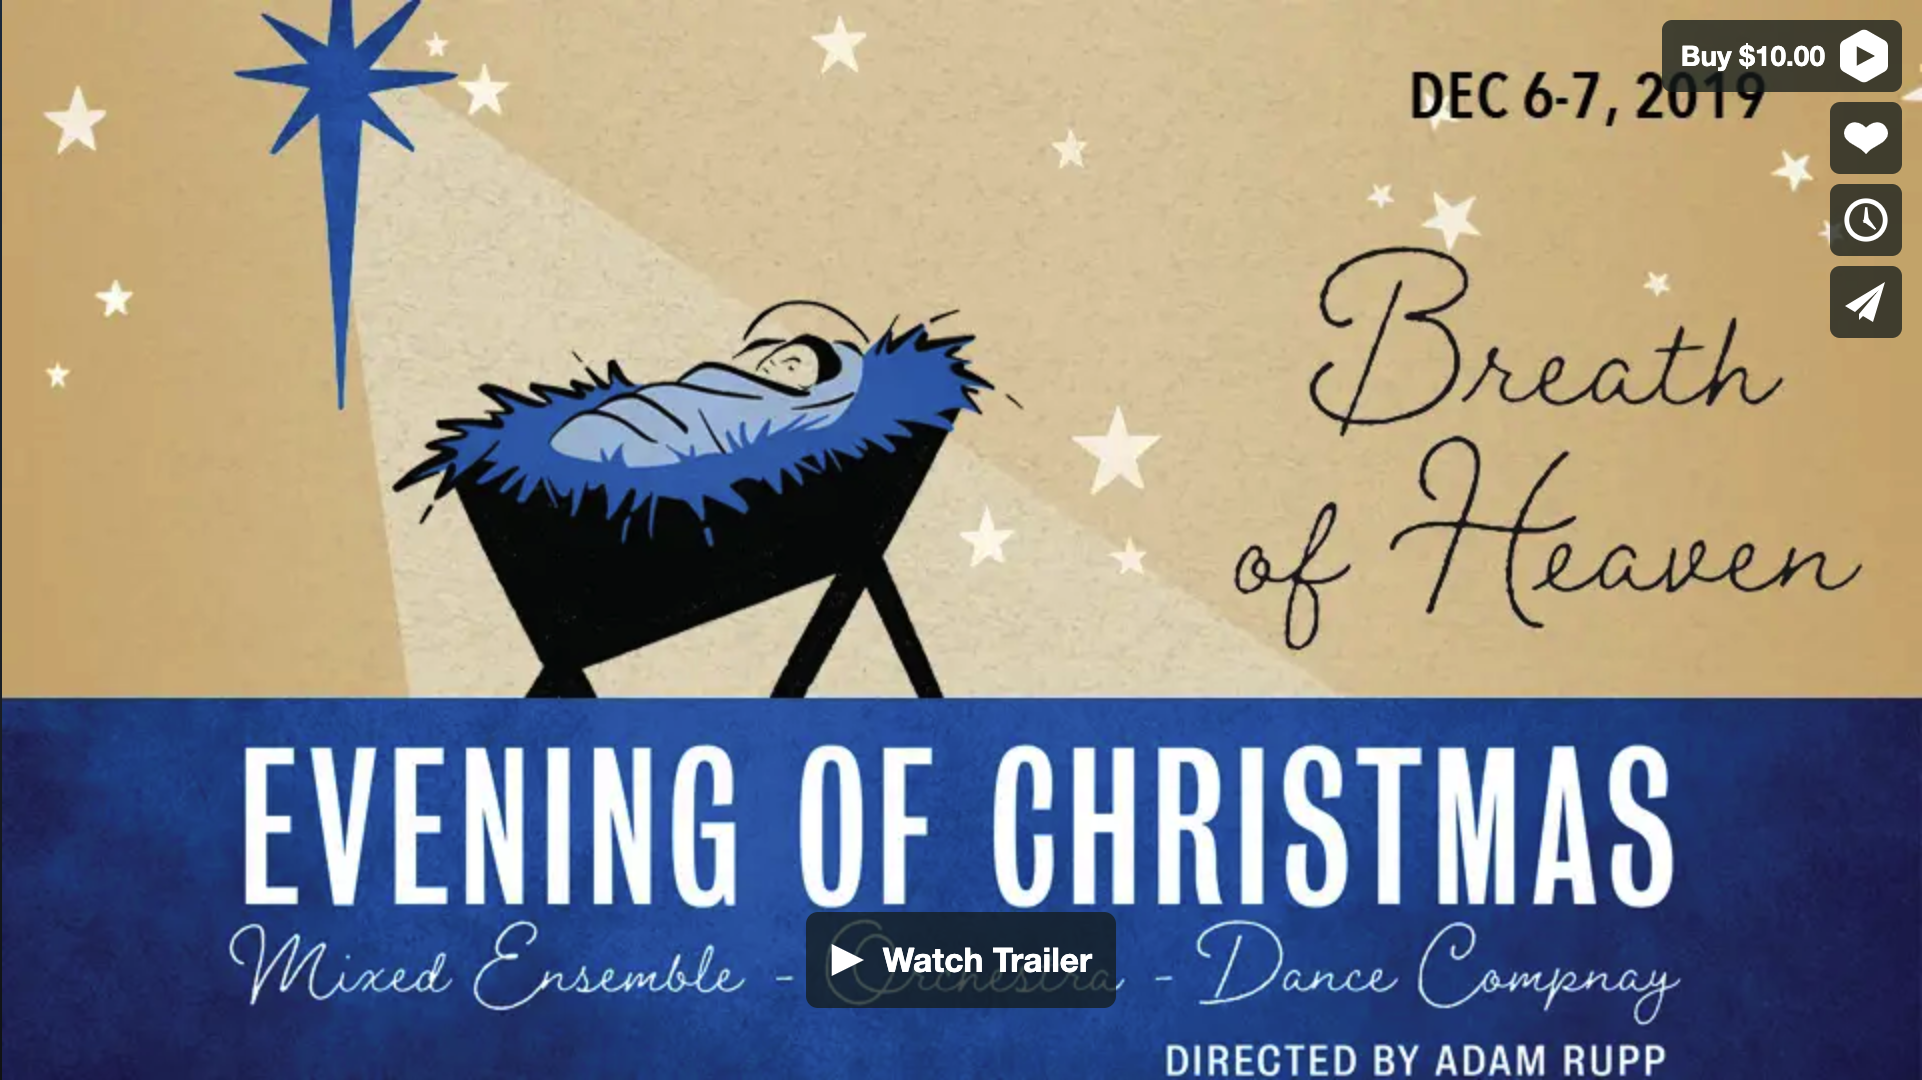 Evening of Christmas: Breath of Heaven